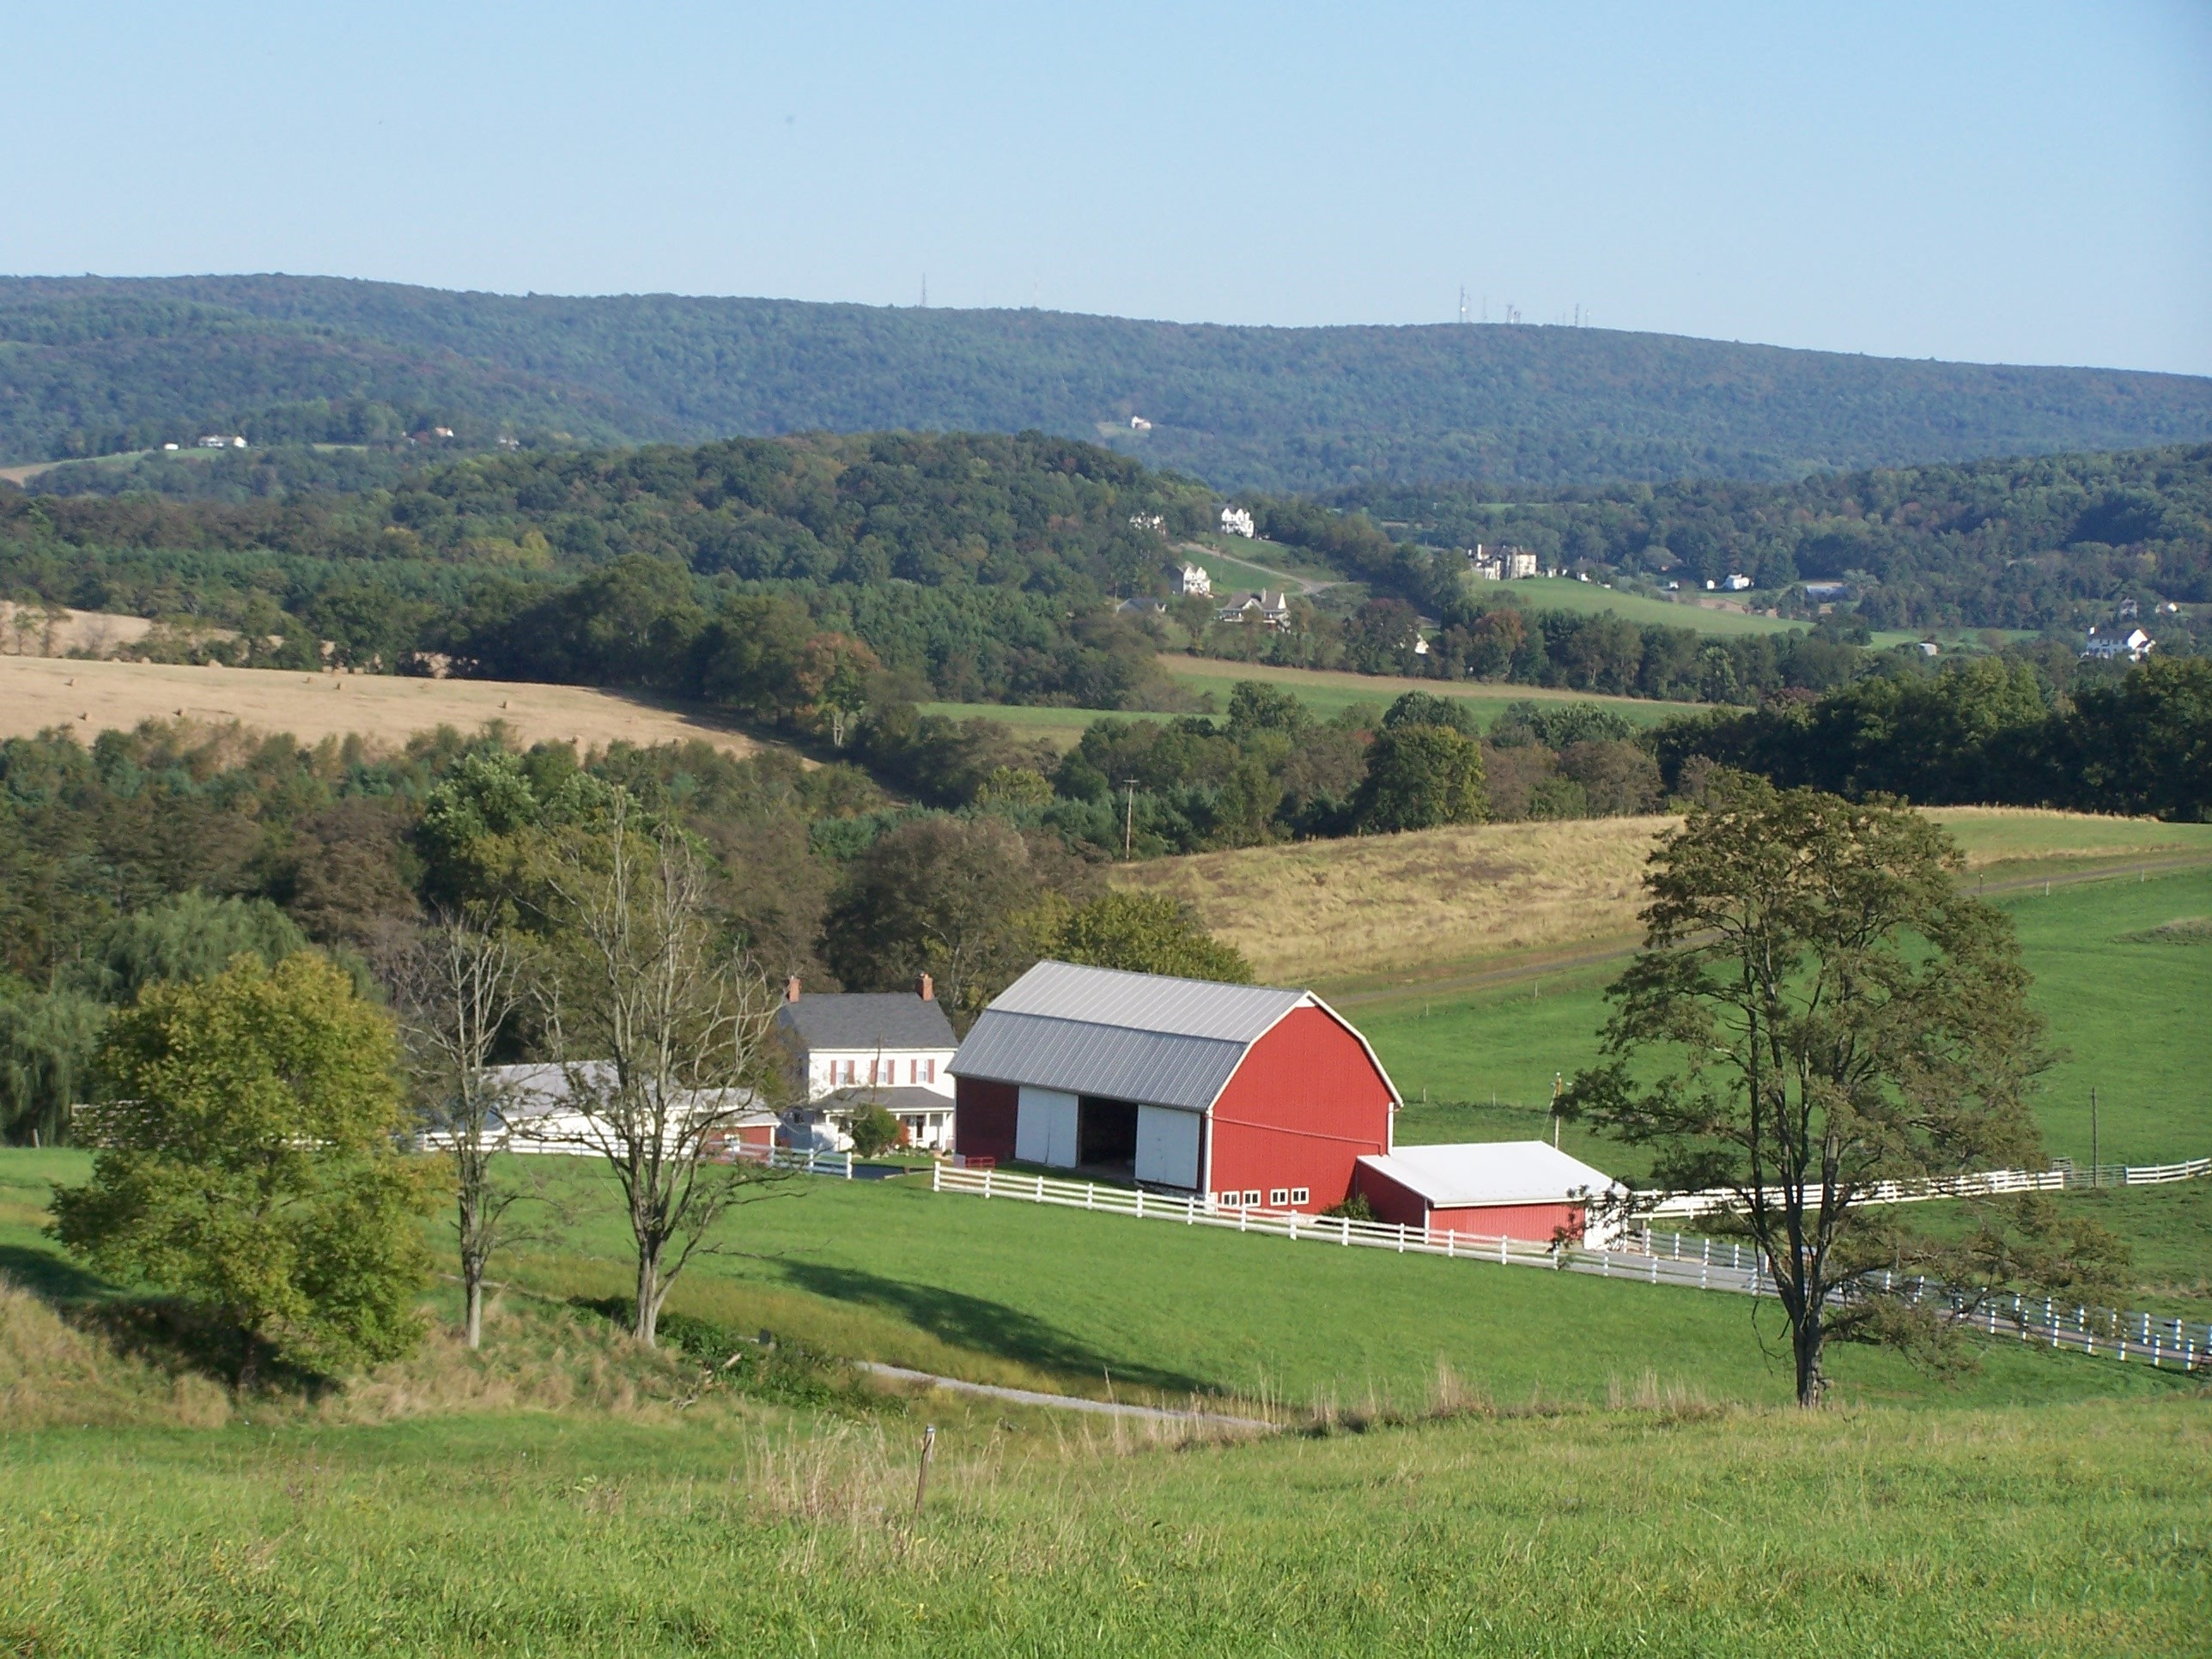 Farm in Frederick County, Maryland